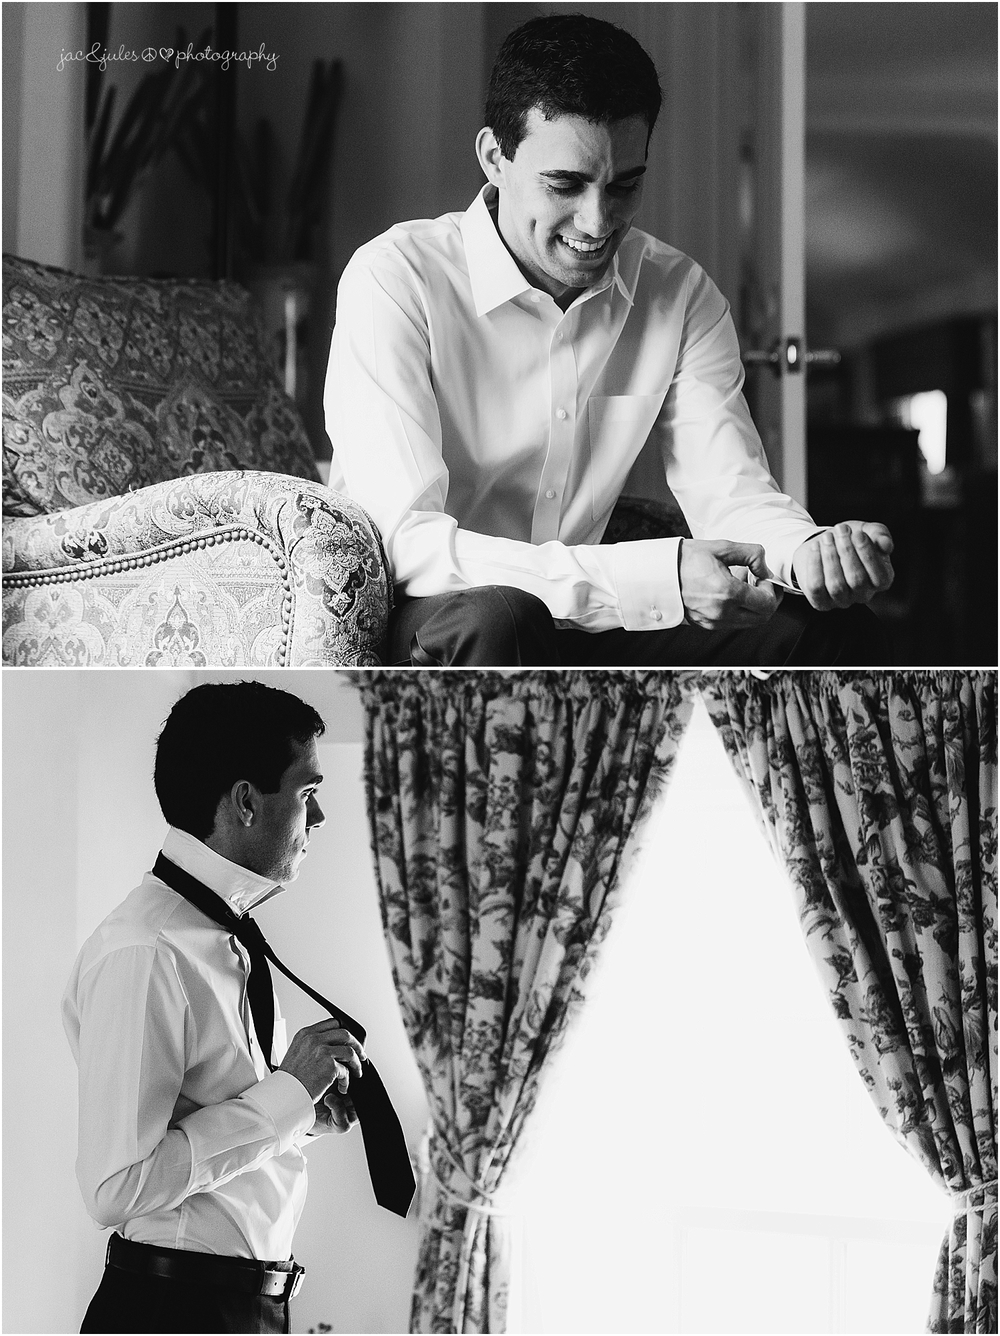 jacnjules photographs groom getting ready for his wedding at the olde mill inn in basking ridge nj